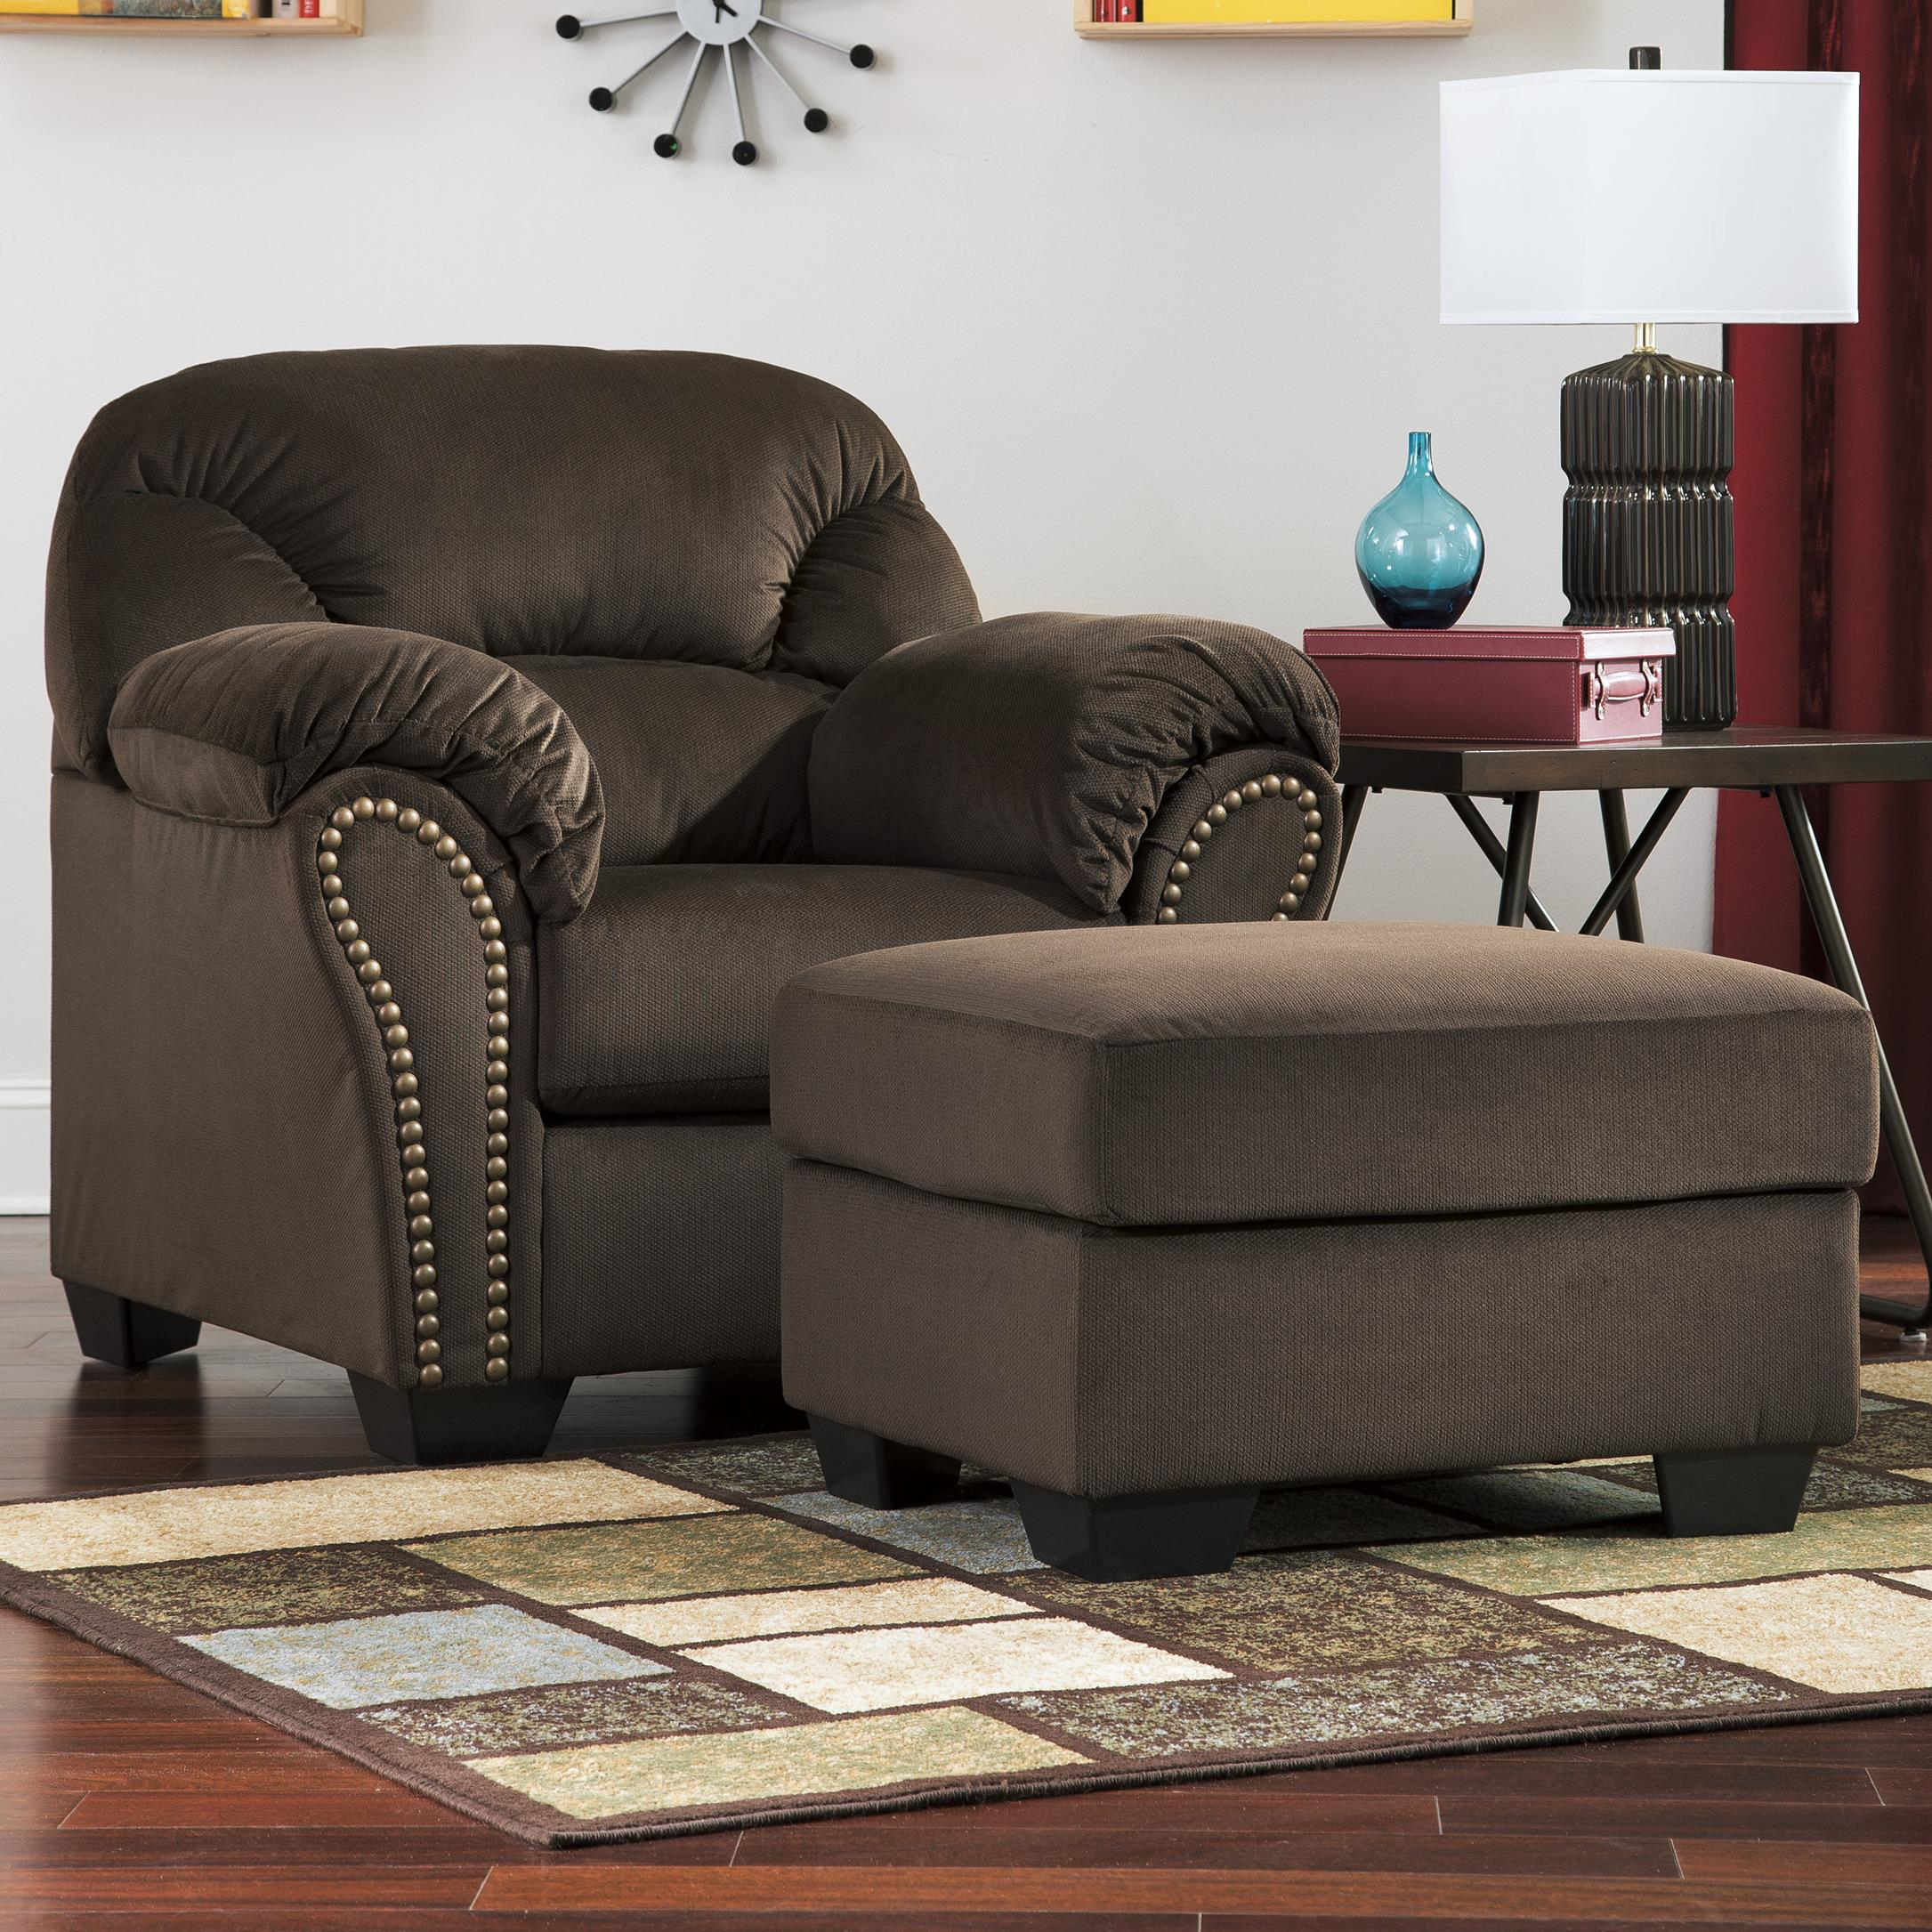 Signature Design by Ashley Kinlock Chair & Ottoman - Item Number: 3340120+14